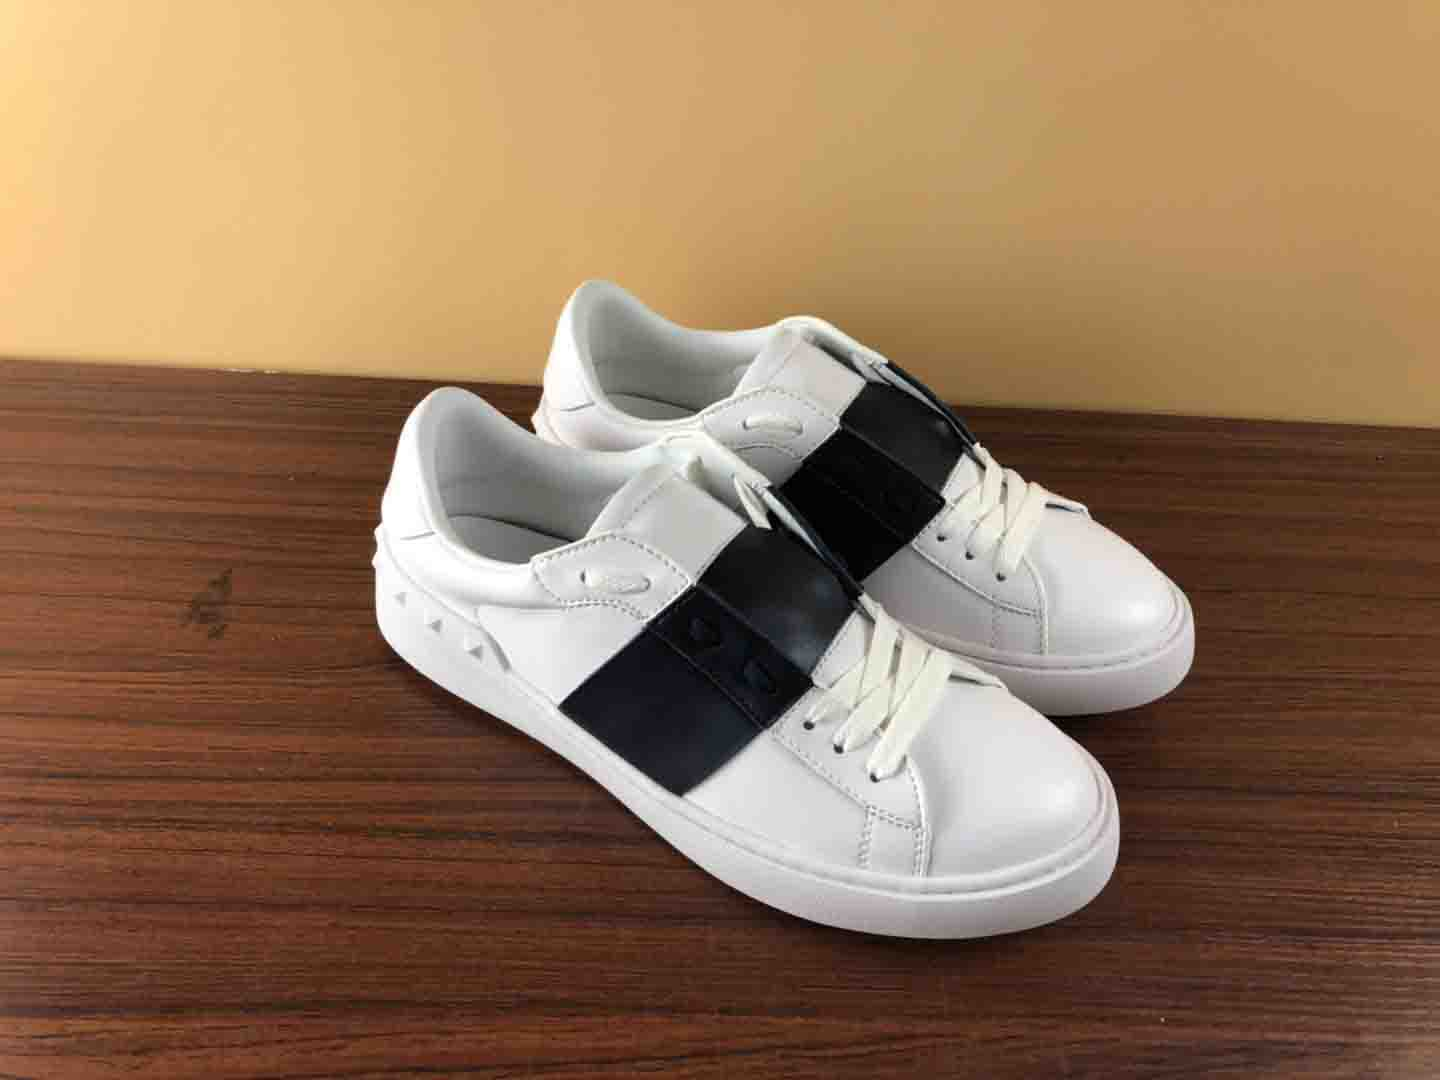 Samelife New Men Women designer shoes real leather top quality open sneakers with box black stripe casual Skateboarding shoes in Skateboarding from Sports Entertainment